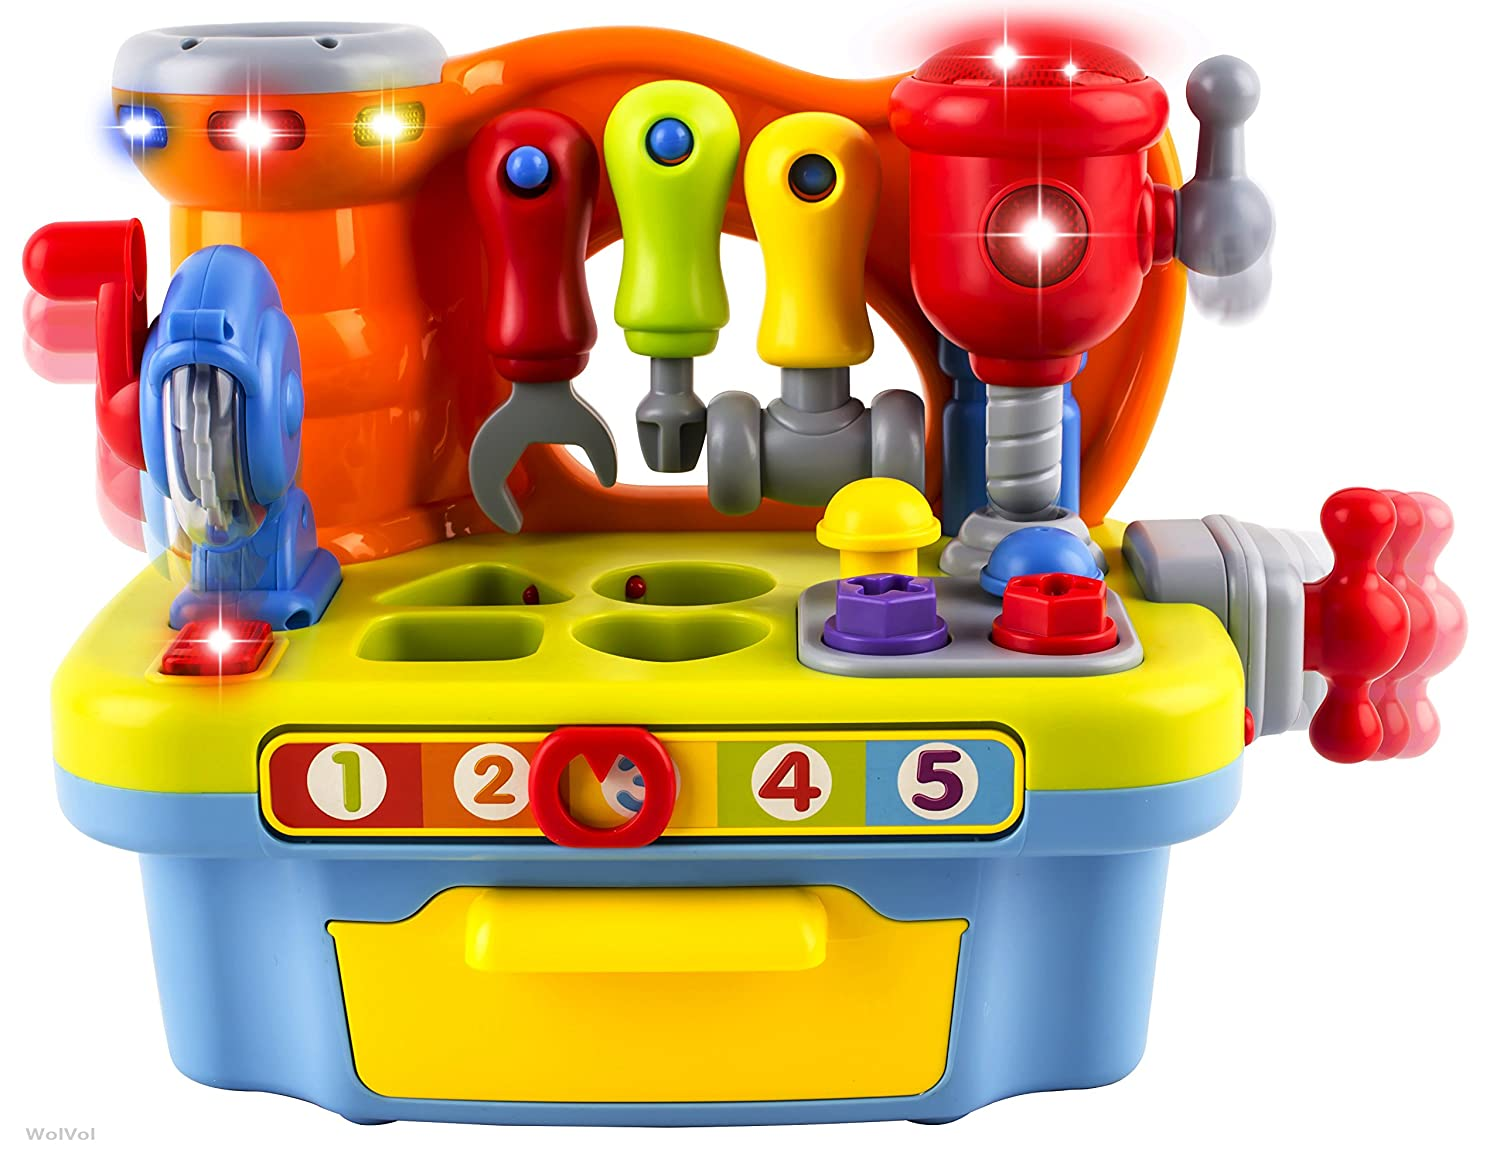 Christmas Gifts For 18 Month Old Boy.Best Gifts For A 18 Month Old Boy In 2019